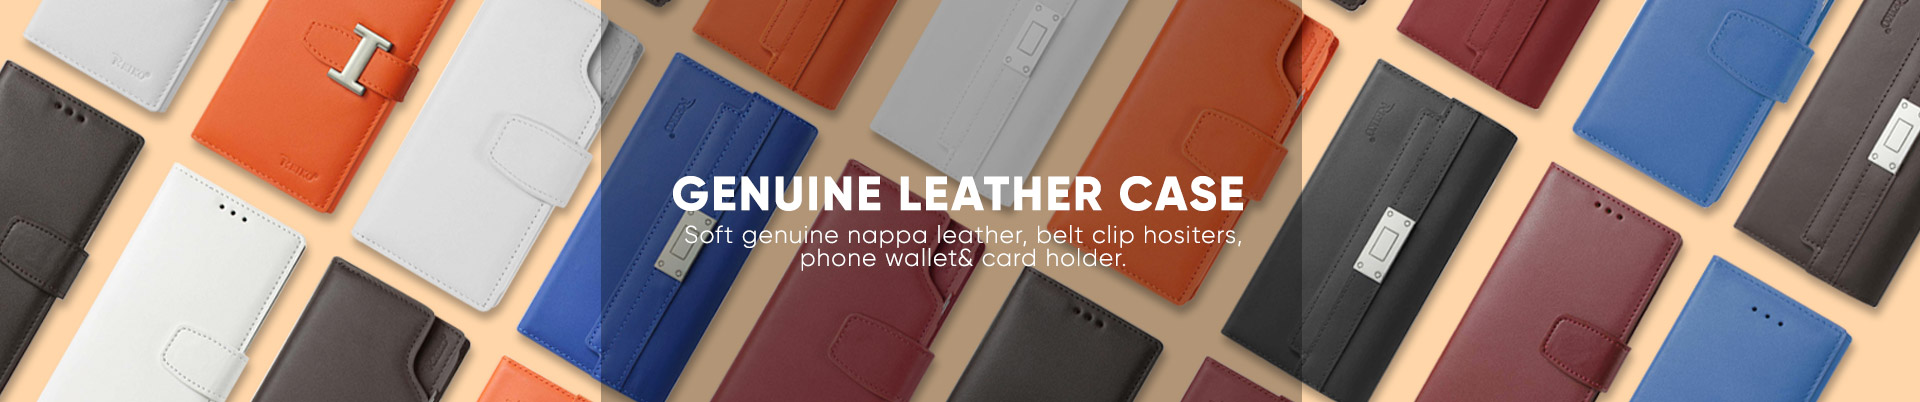 wallet-genuine-banner.jpg